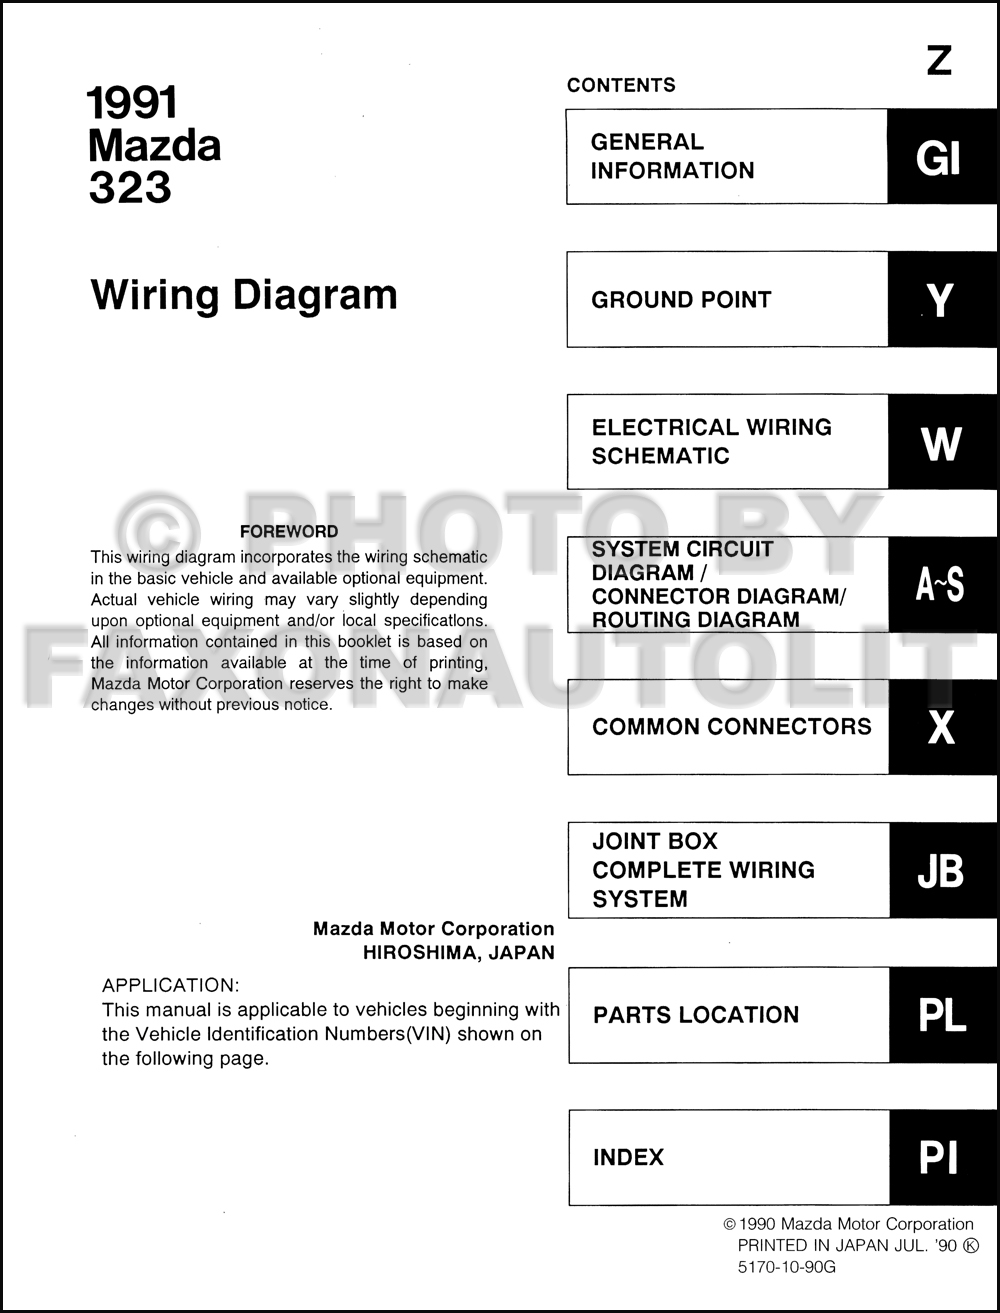 Mazda Familia 1997 Fuse Box Diagram Archive Of Automotive Wiring Protege5 Layout 1991 323 And Protege Manual Original Rh Faxonautoliterature Com